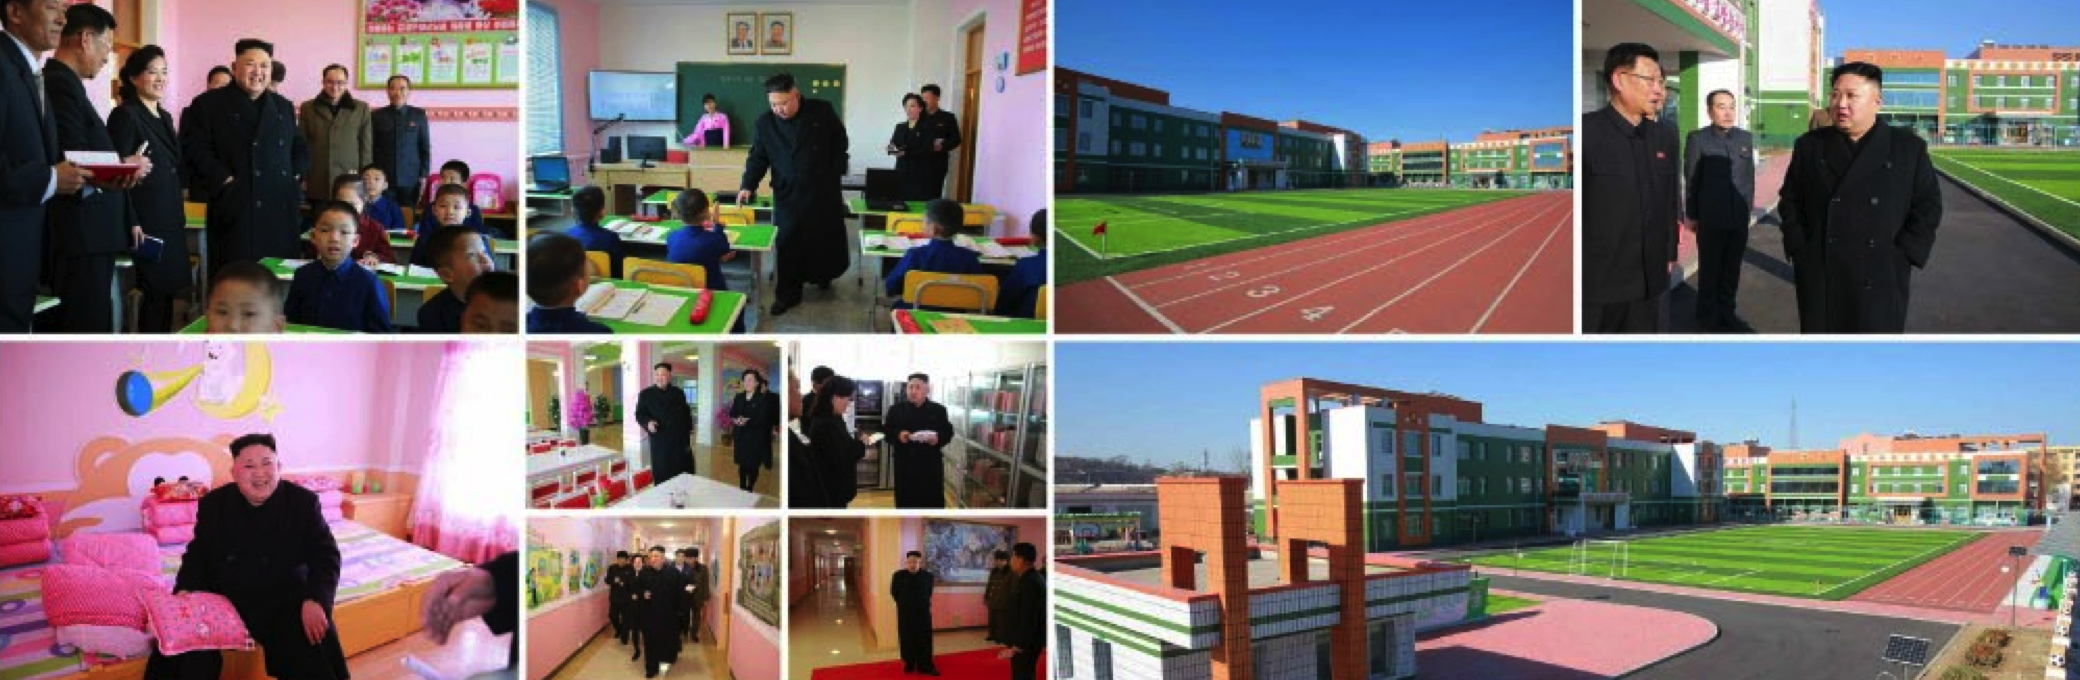 Photo spread of Kim Jong Un's visit to the Pyongyang Orphans' School which appeared on the top of page 2 of the February 2, 2017 edition of the WPK daily newspaper Rodong Sinmun (Photos: Rodong Sinmun/KCNA/Korean Press Media).